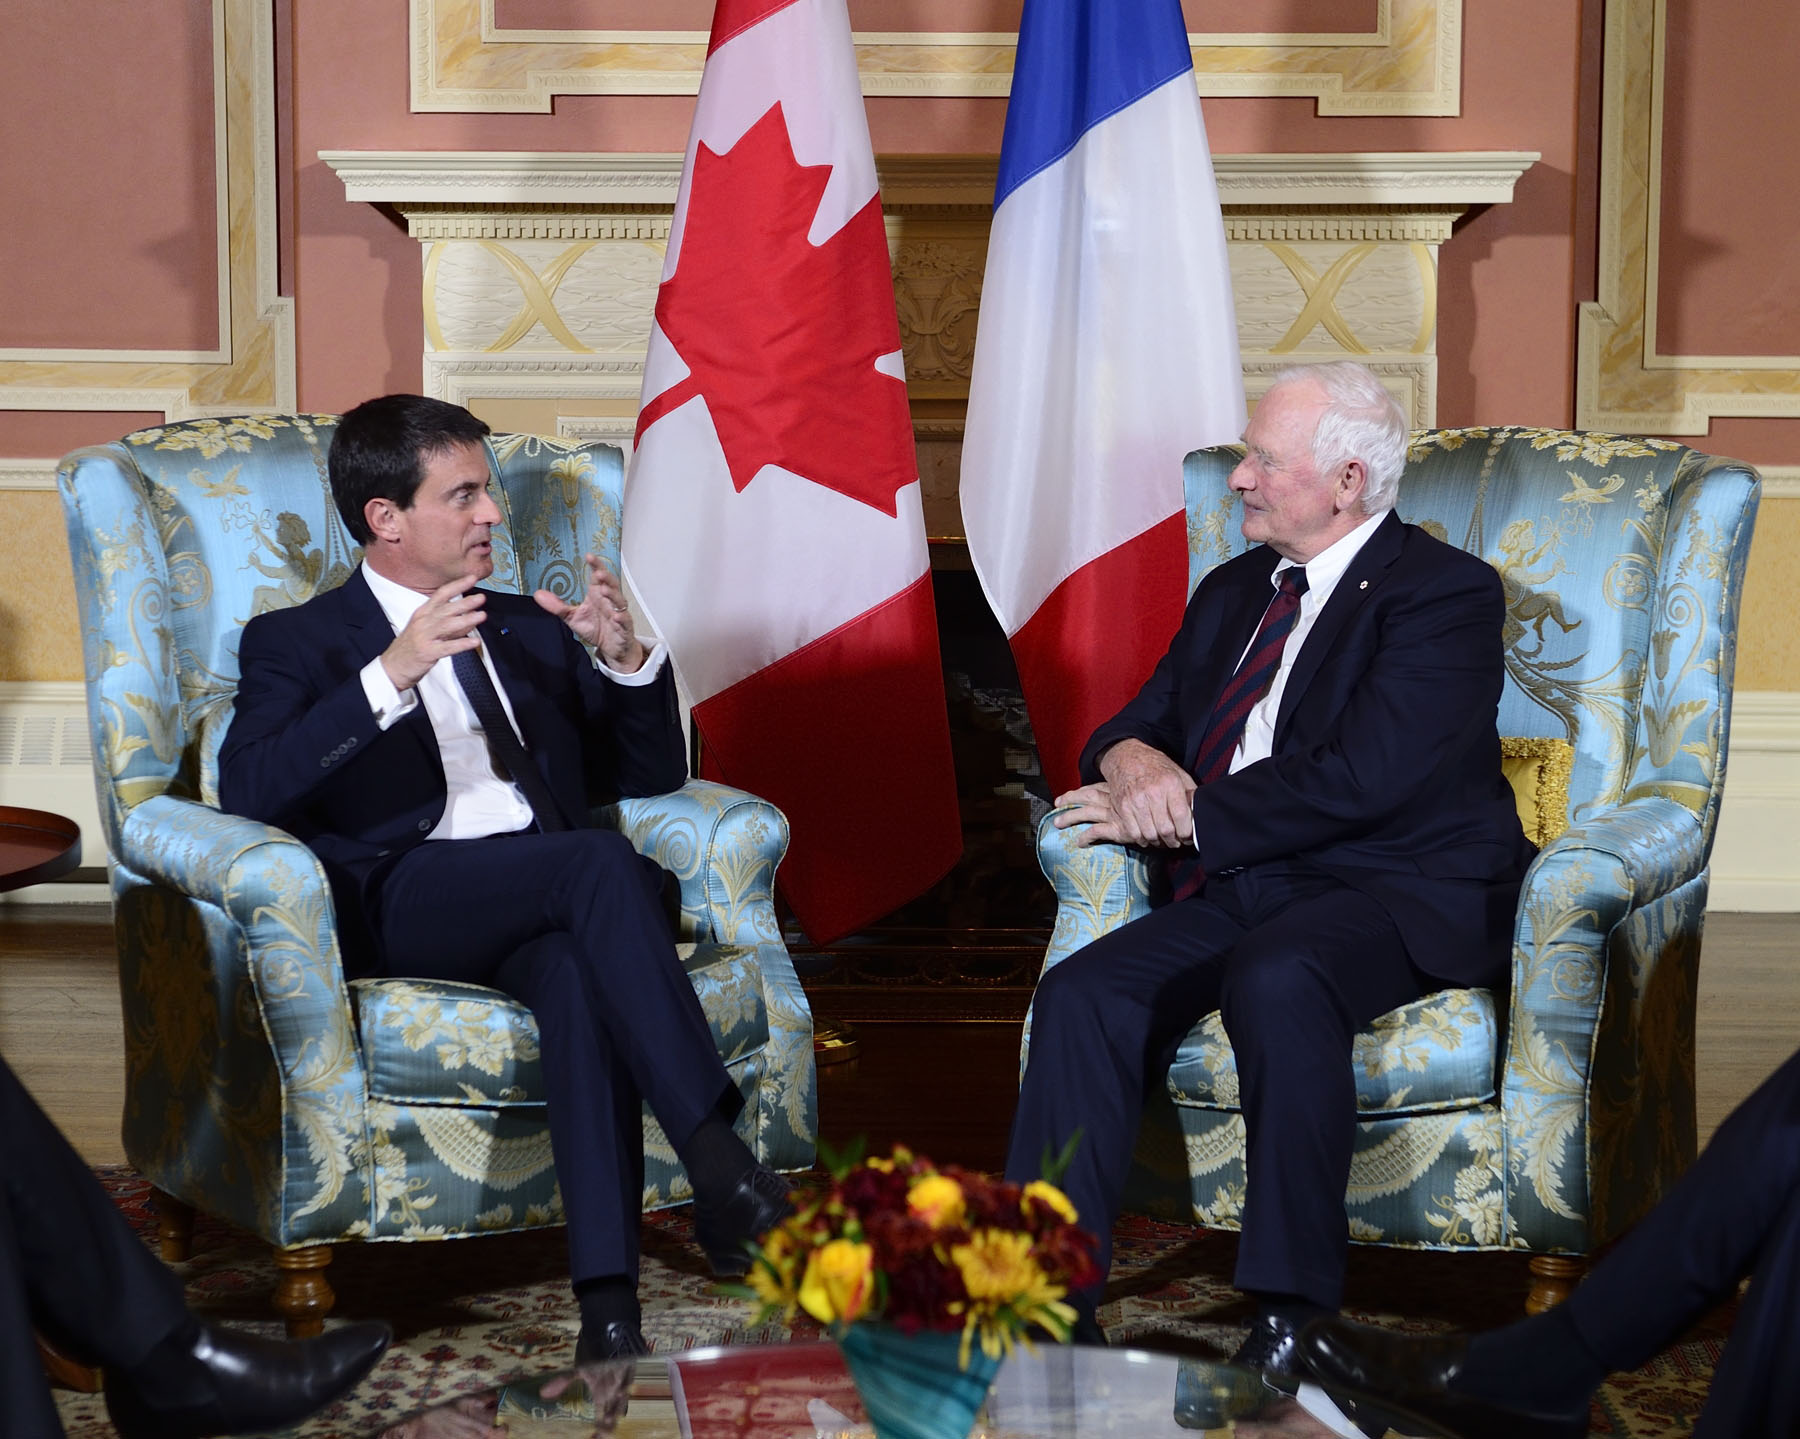 His Excellency the Right Honourable David Johnston, Governor General of Canada, met with His Excellency Manuel Valls, Prime Minister of the French Republic, at Rideau Hall on October 12, 2016.